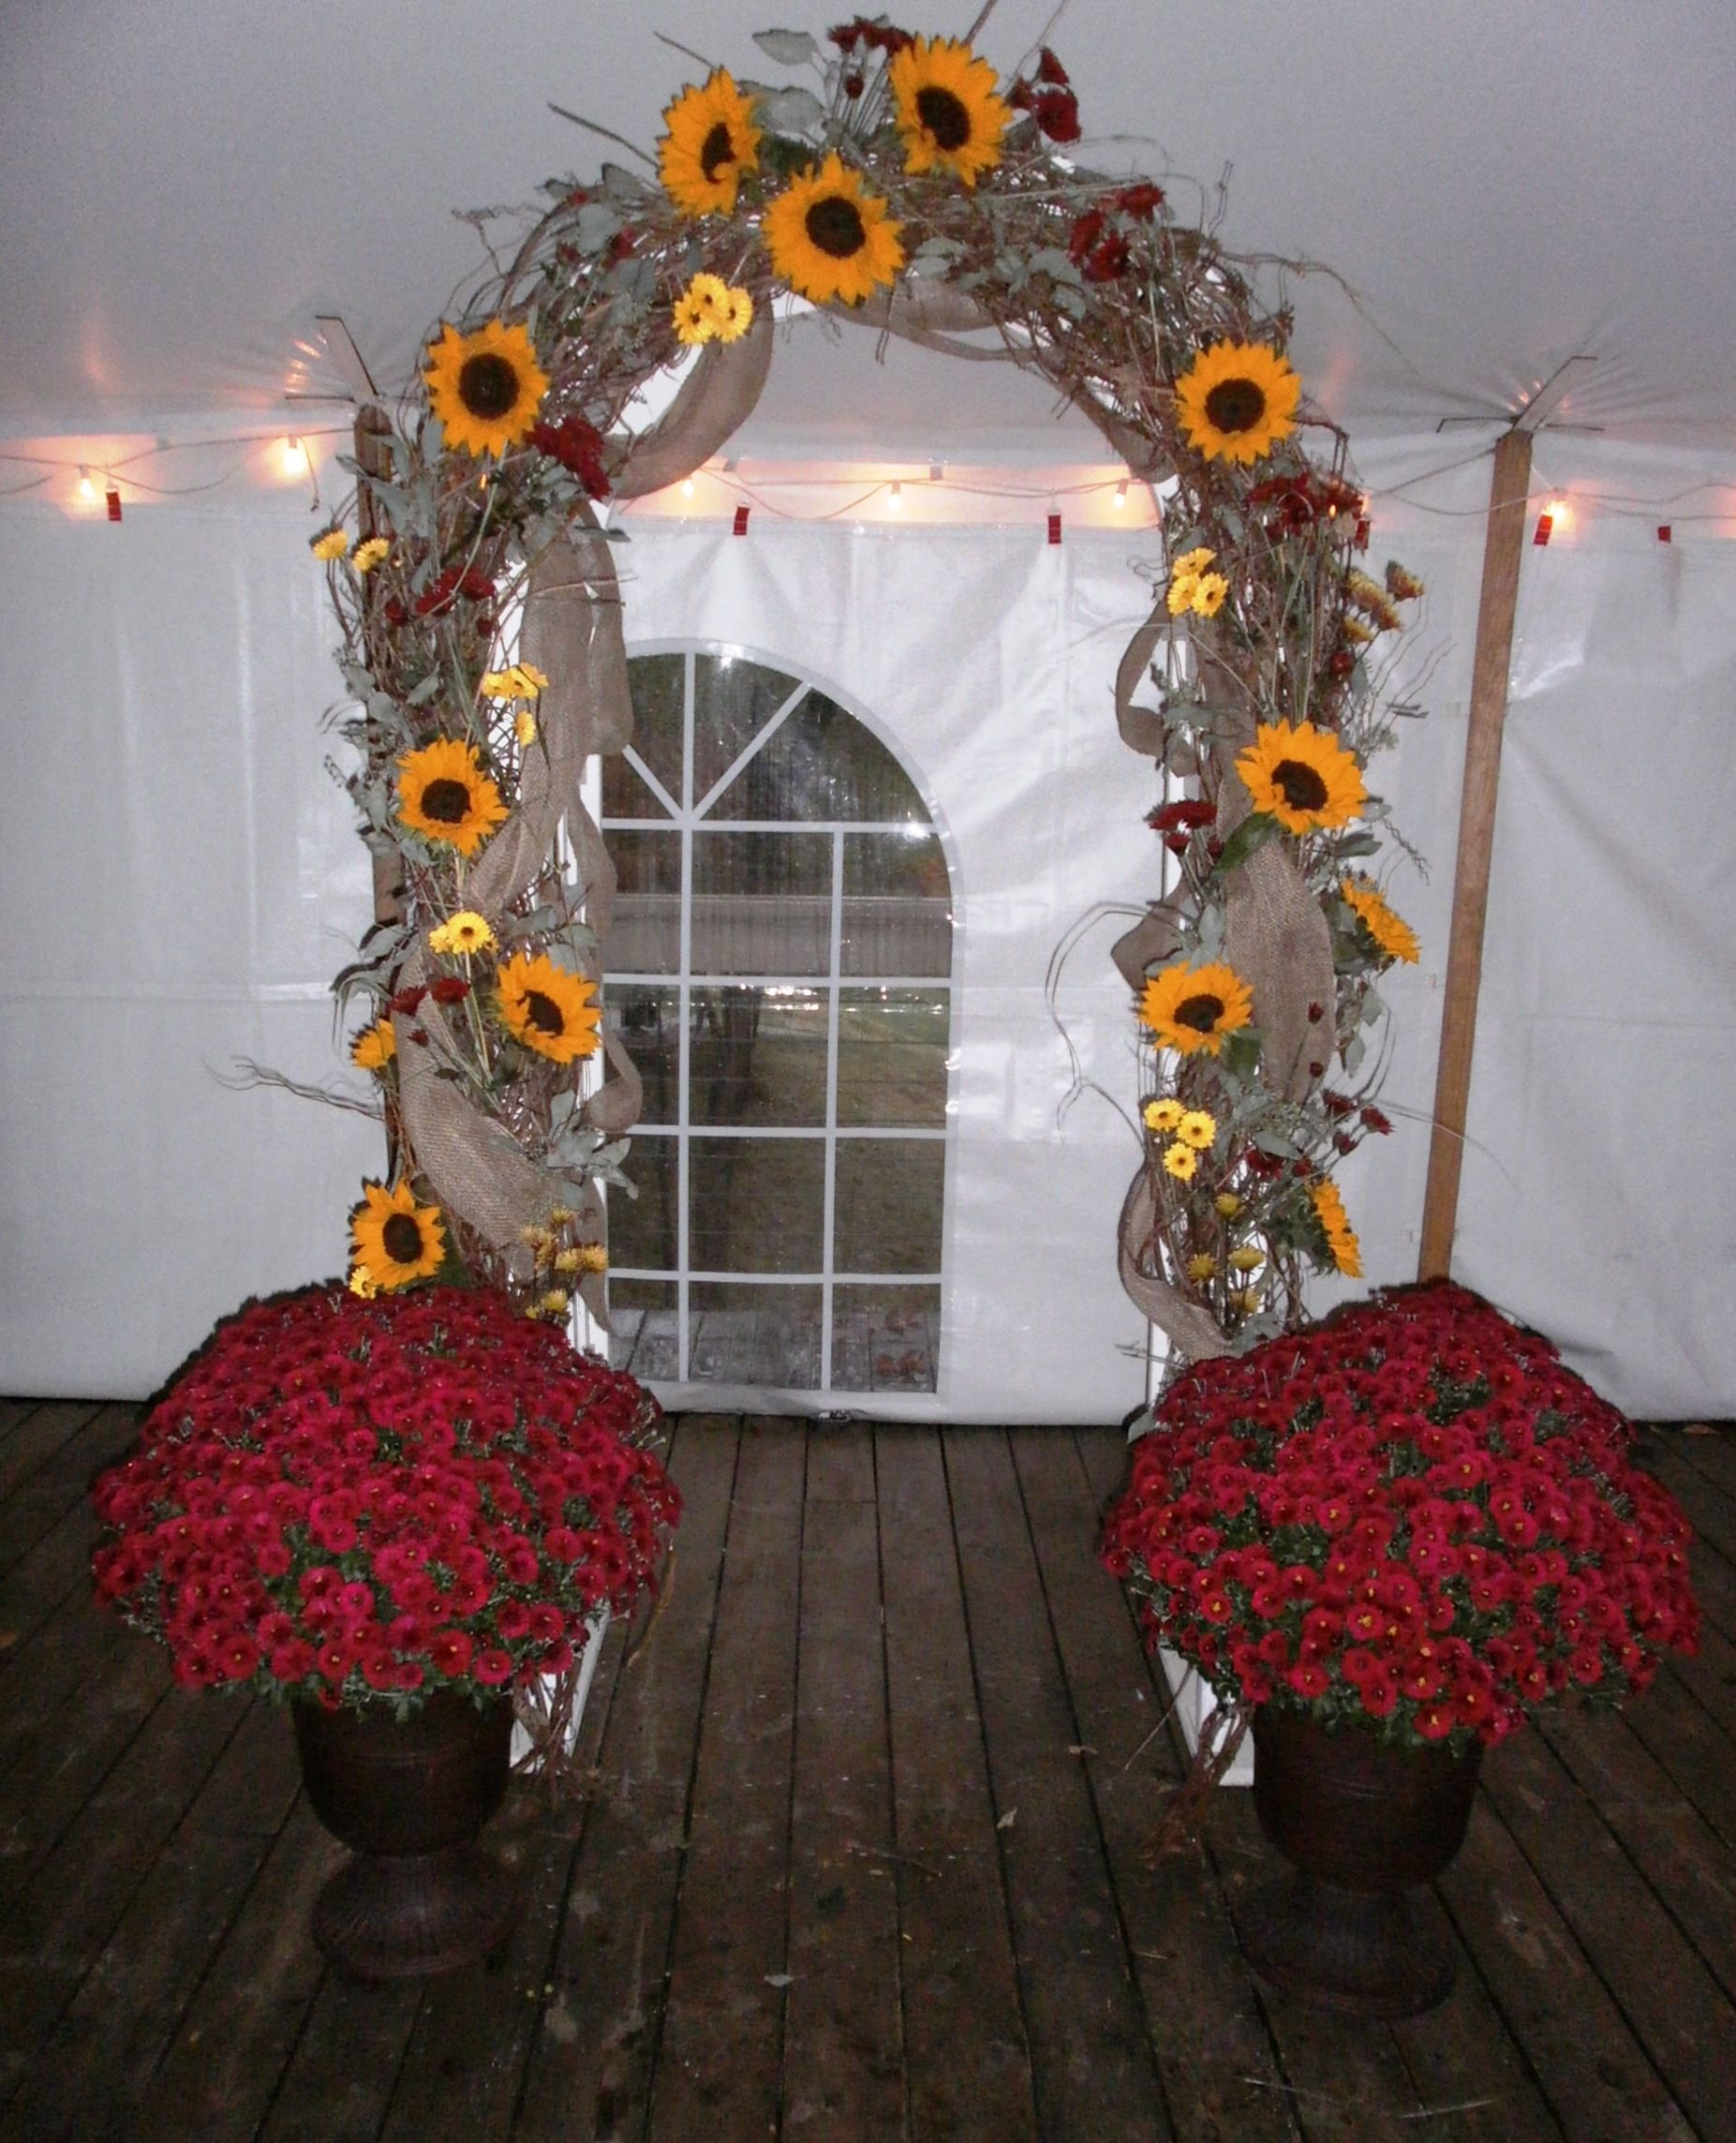 Rustic Wedding Arch With Burlap: Grapevine Arch With Sunflowers, Mums And Burlap Designed